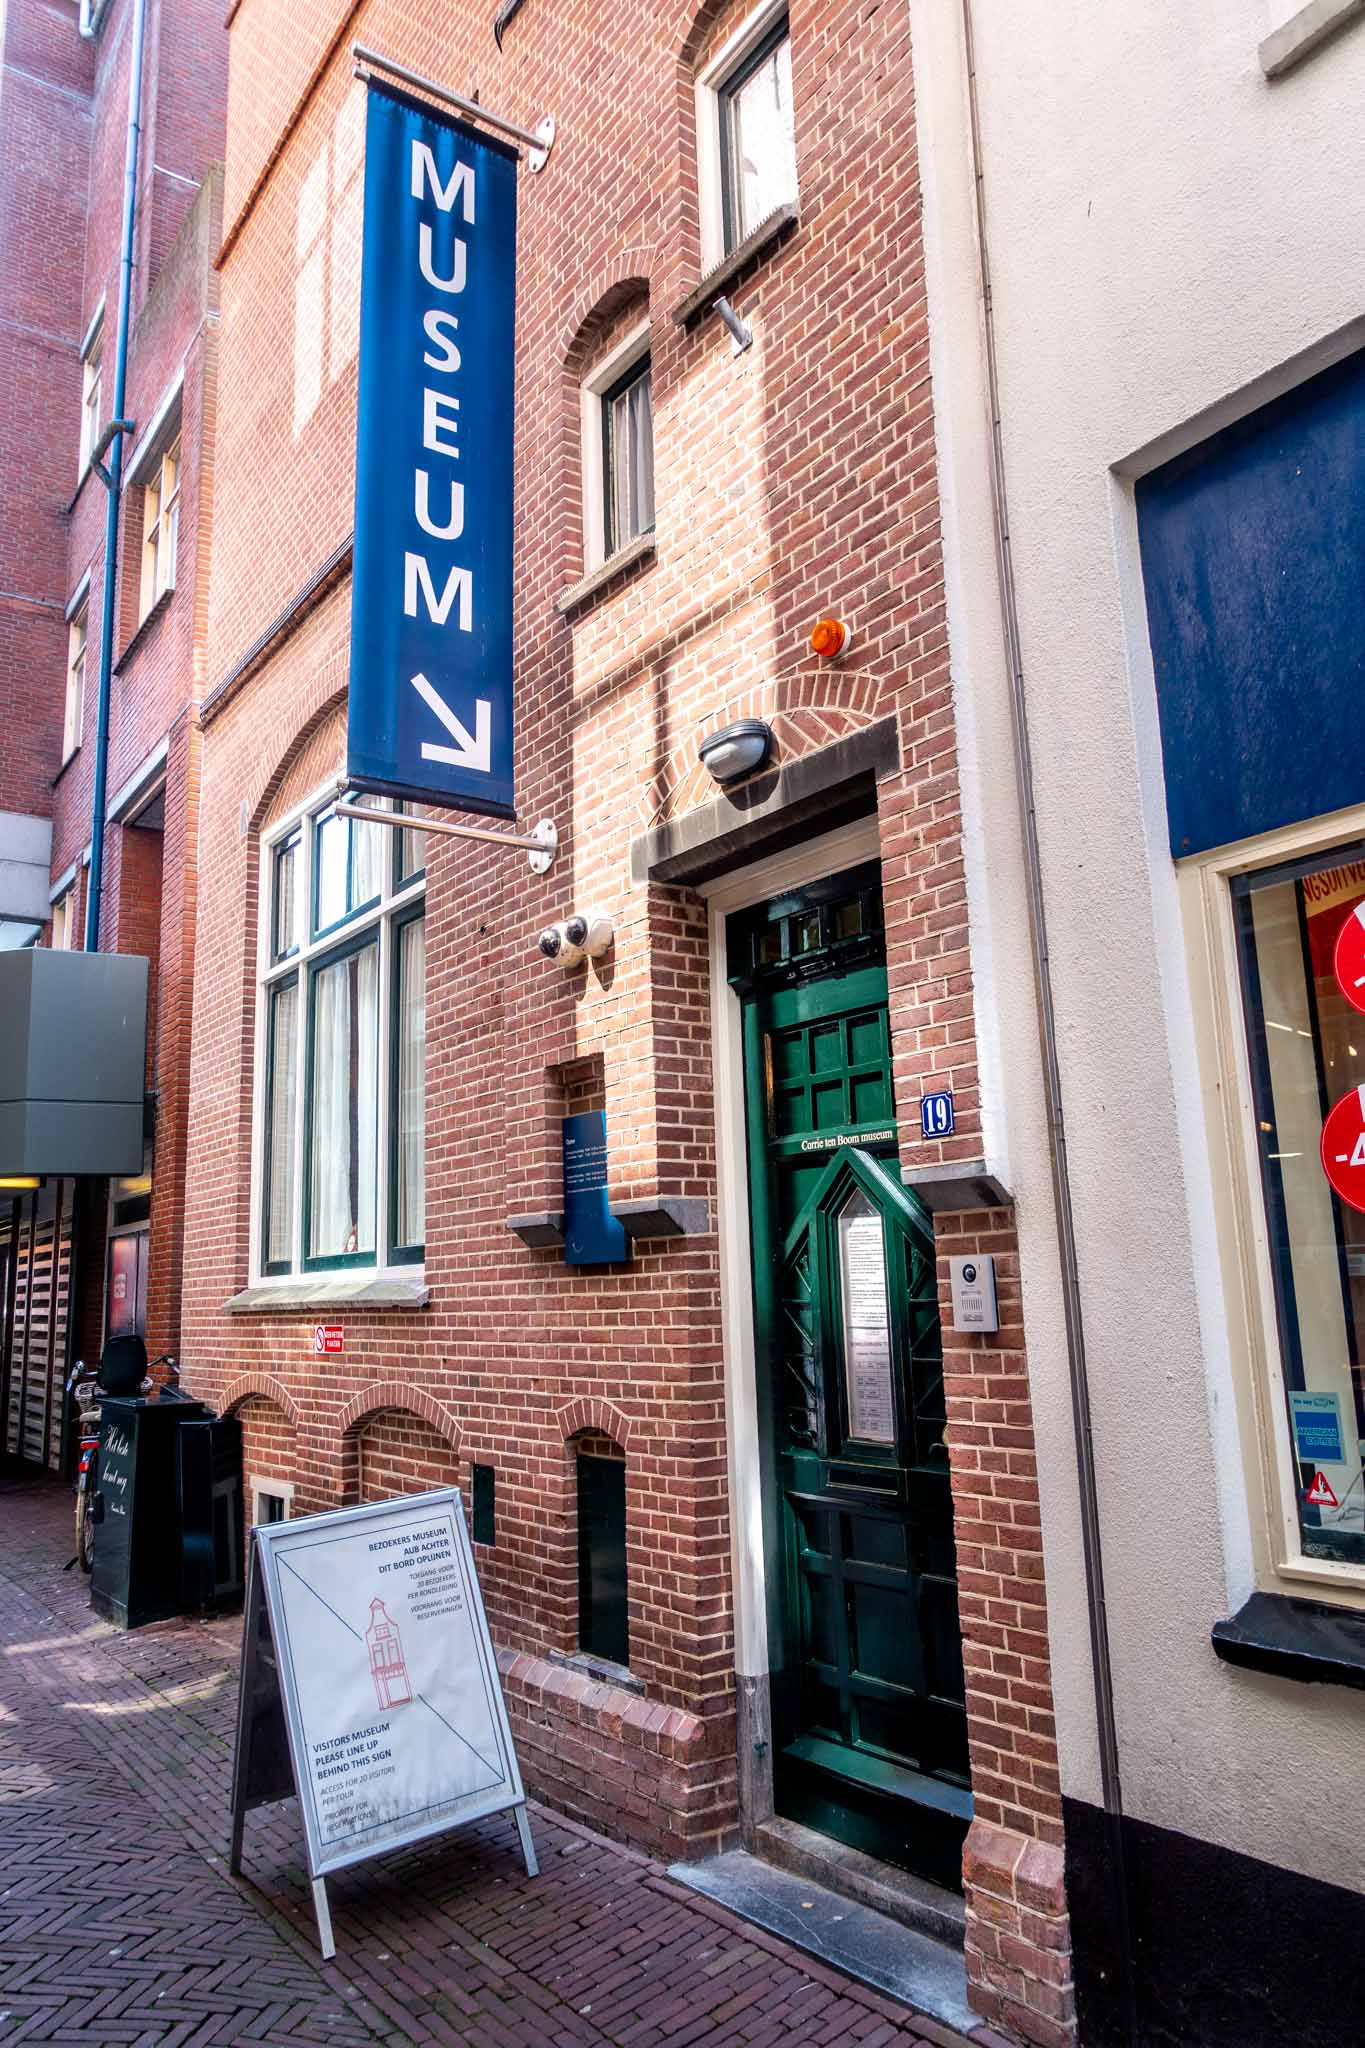 """Exterior of a building with a sign that says """"Museum"""""""